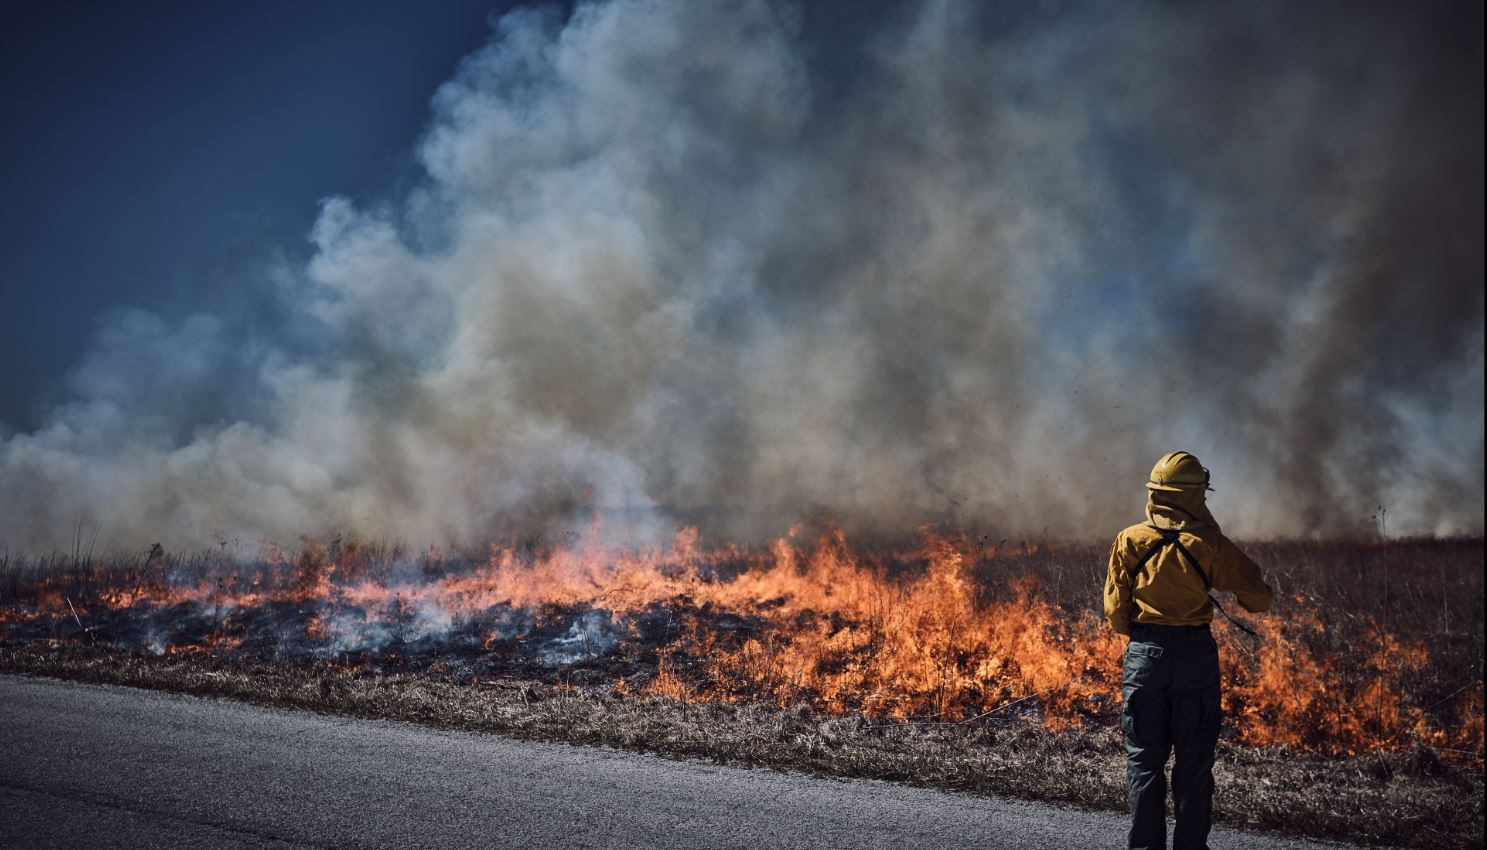 Fire fighter standing in front of a field fire.